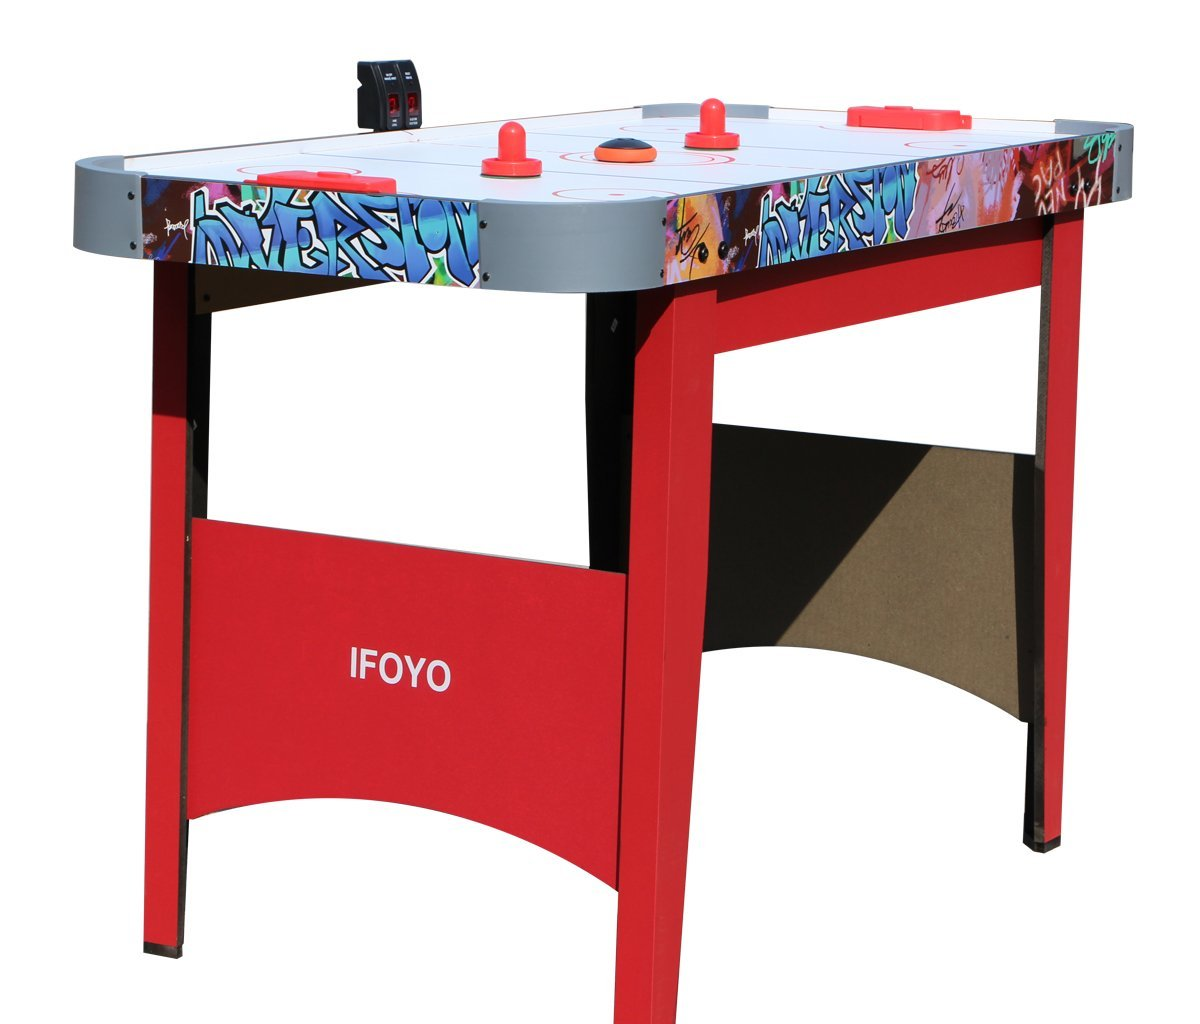 IFOYO Air Hockey Table, 48 Inches/4ft Small Hockey Table for Kids and Adults with Electronic Scorer, Red